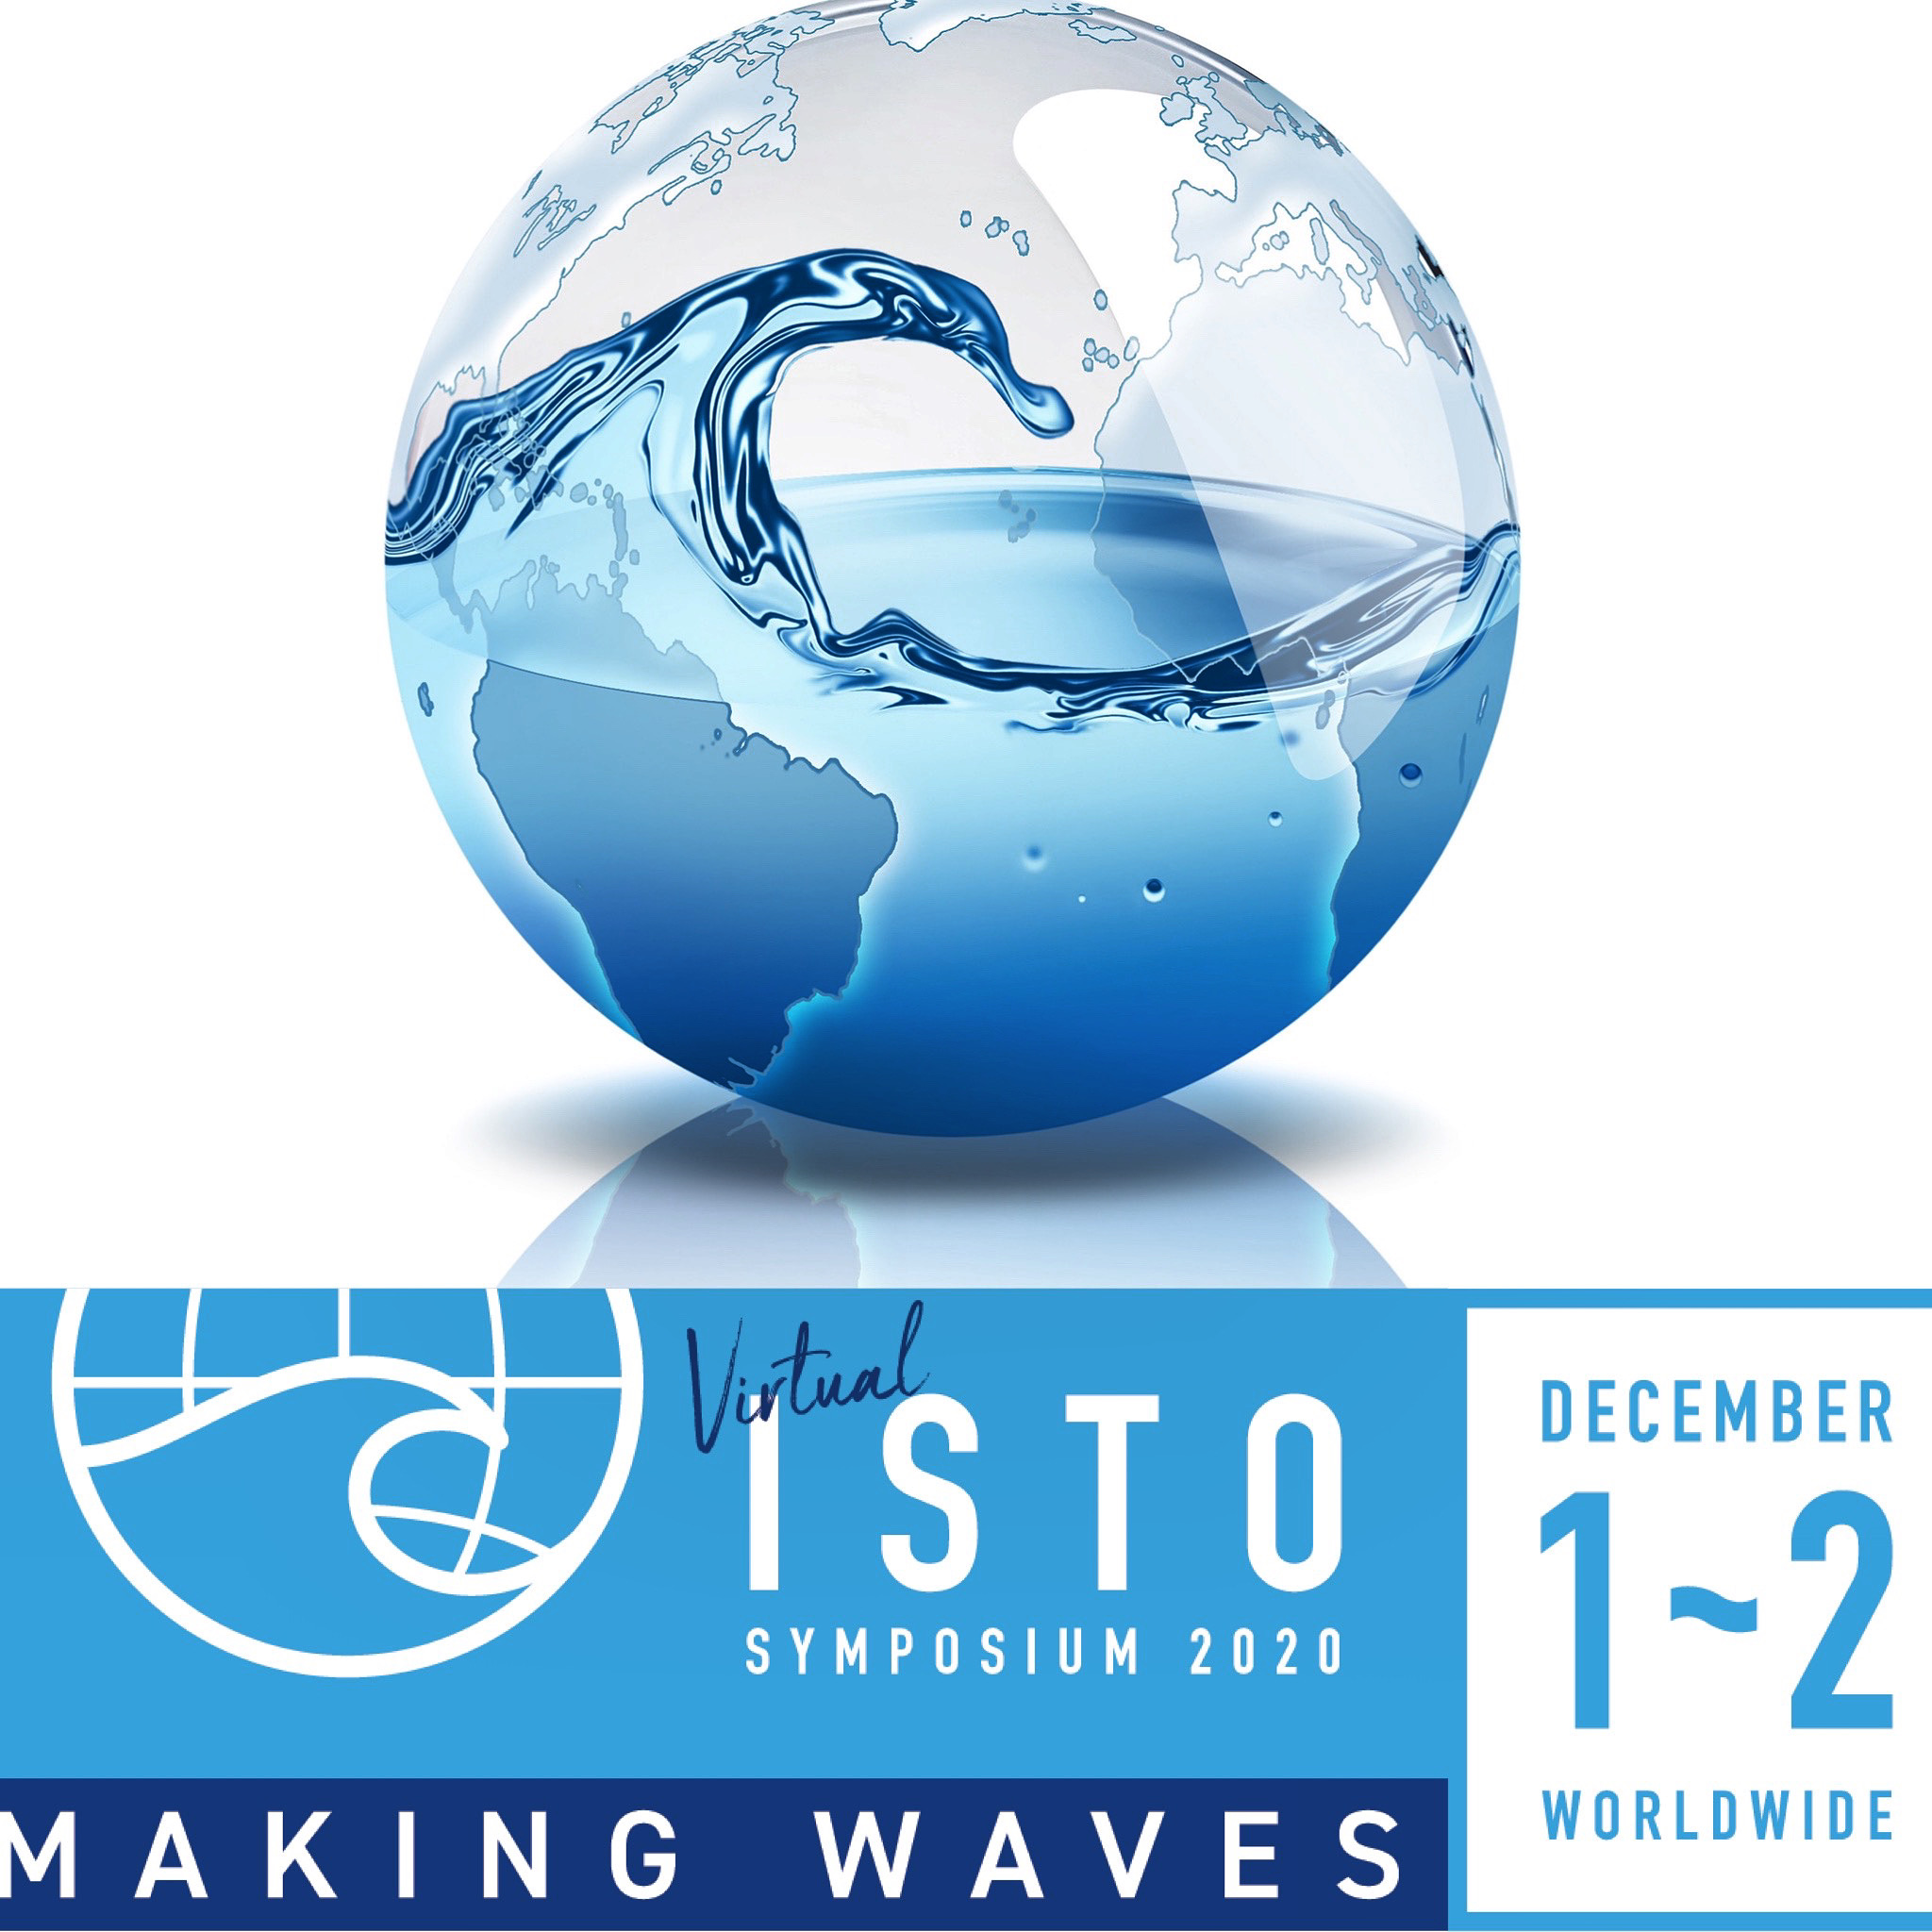 Image 1 2020 ISTO Conference Logo